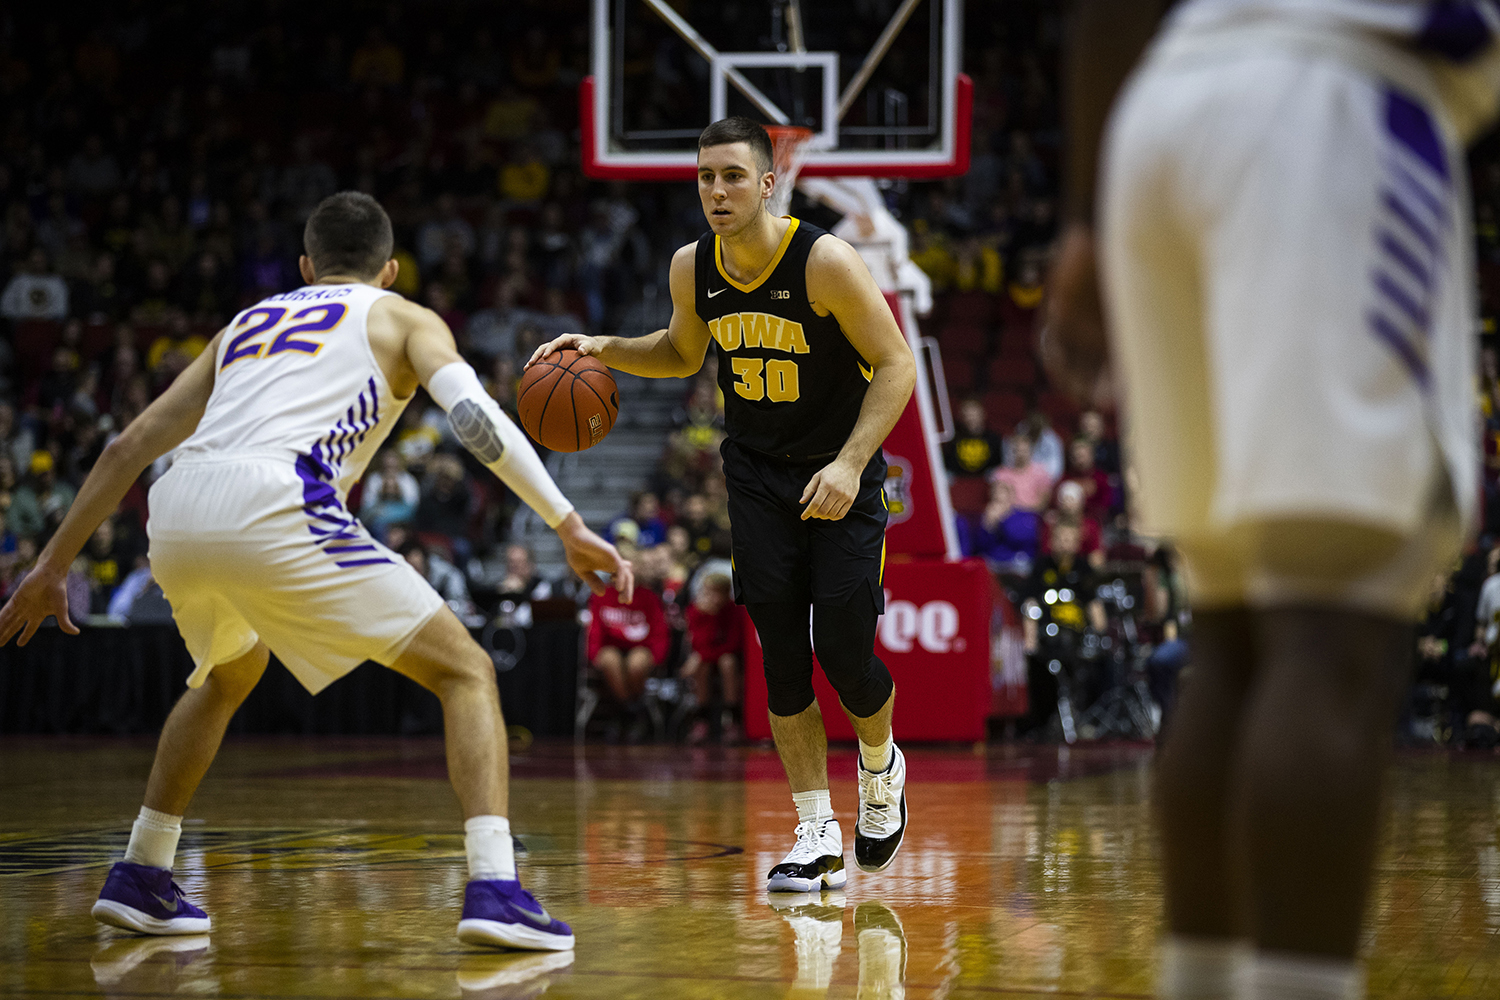 Iowa%27s+Connor+McCaffery+dribbles+the+ball+during+the+Iowa%2FUNI+men%27s+basketball+game+at+Wells+Fargo+Arena+in+Des+Moines+on+Saturday%2C+Dec.+15%2C+2018.+The+Hawkeyes+defeated+the+Panthers%2C+77-54.+